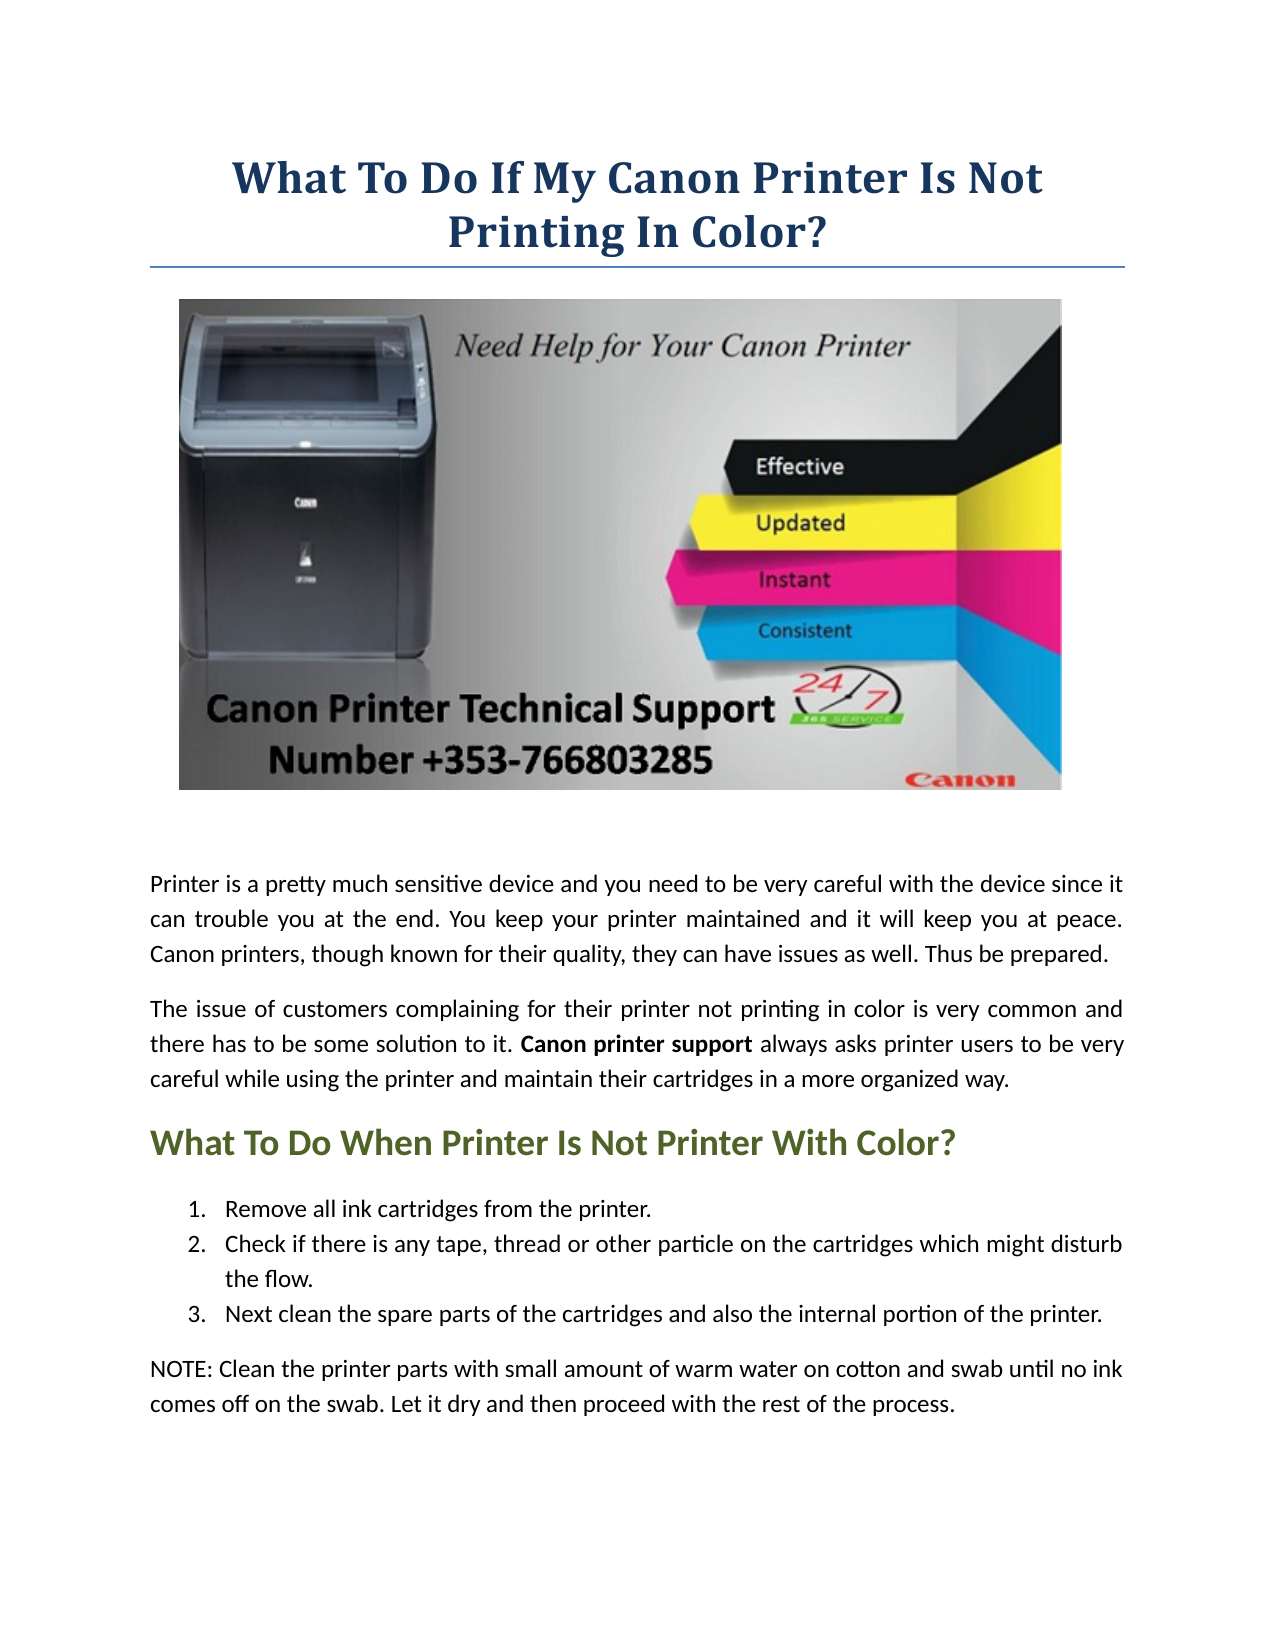 Why the printer does not print 20